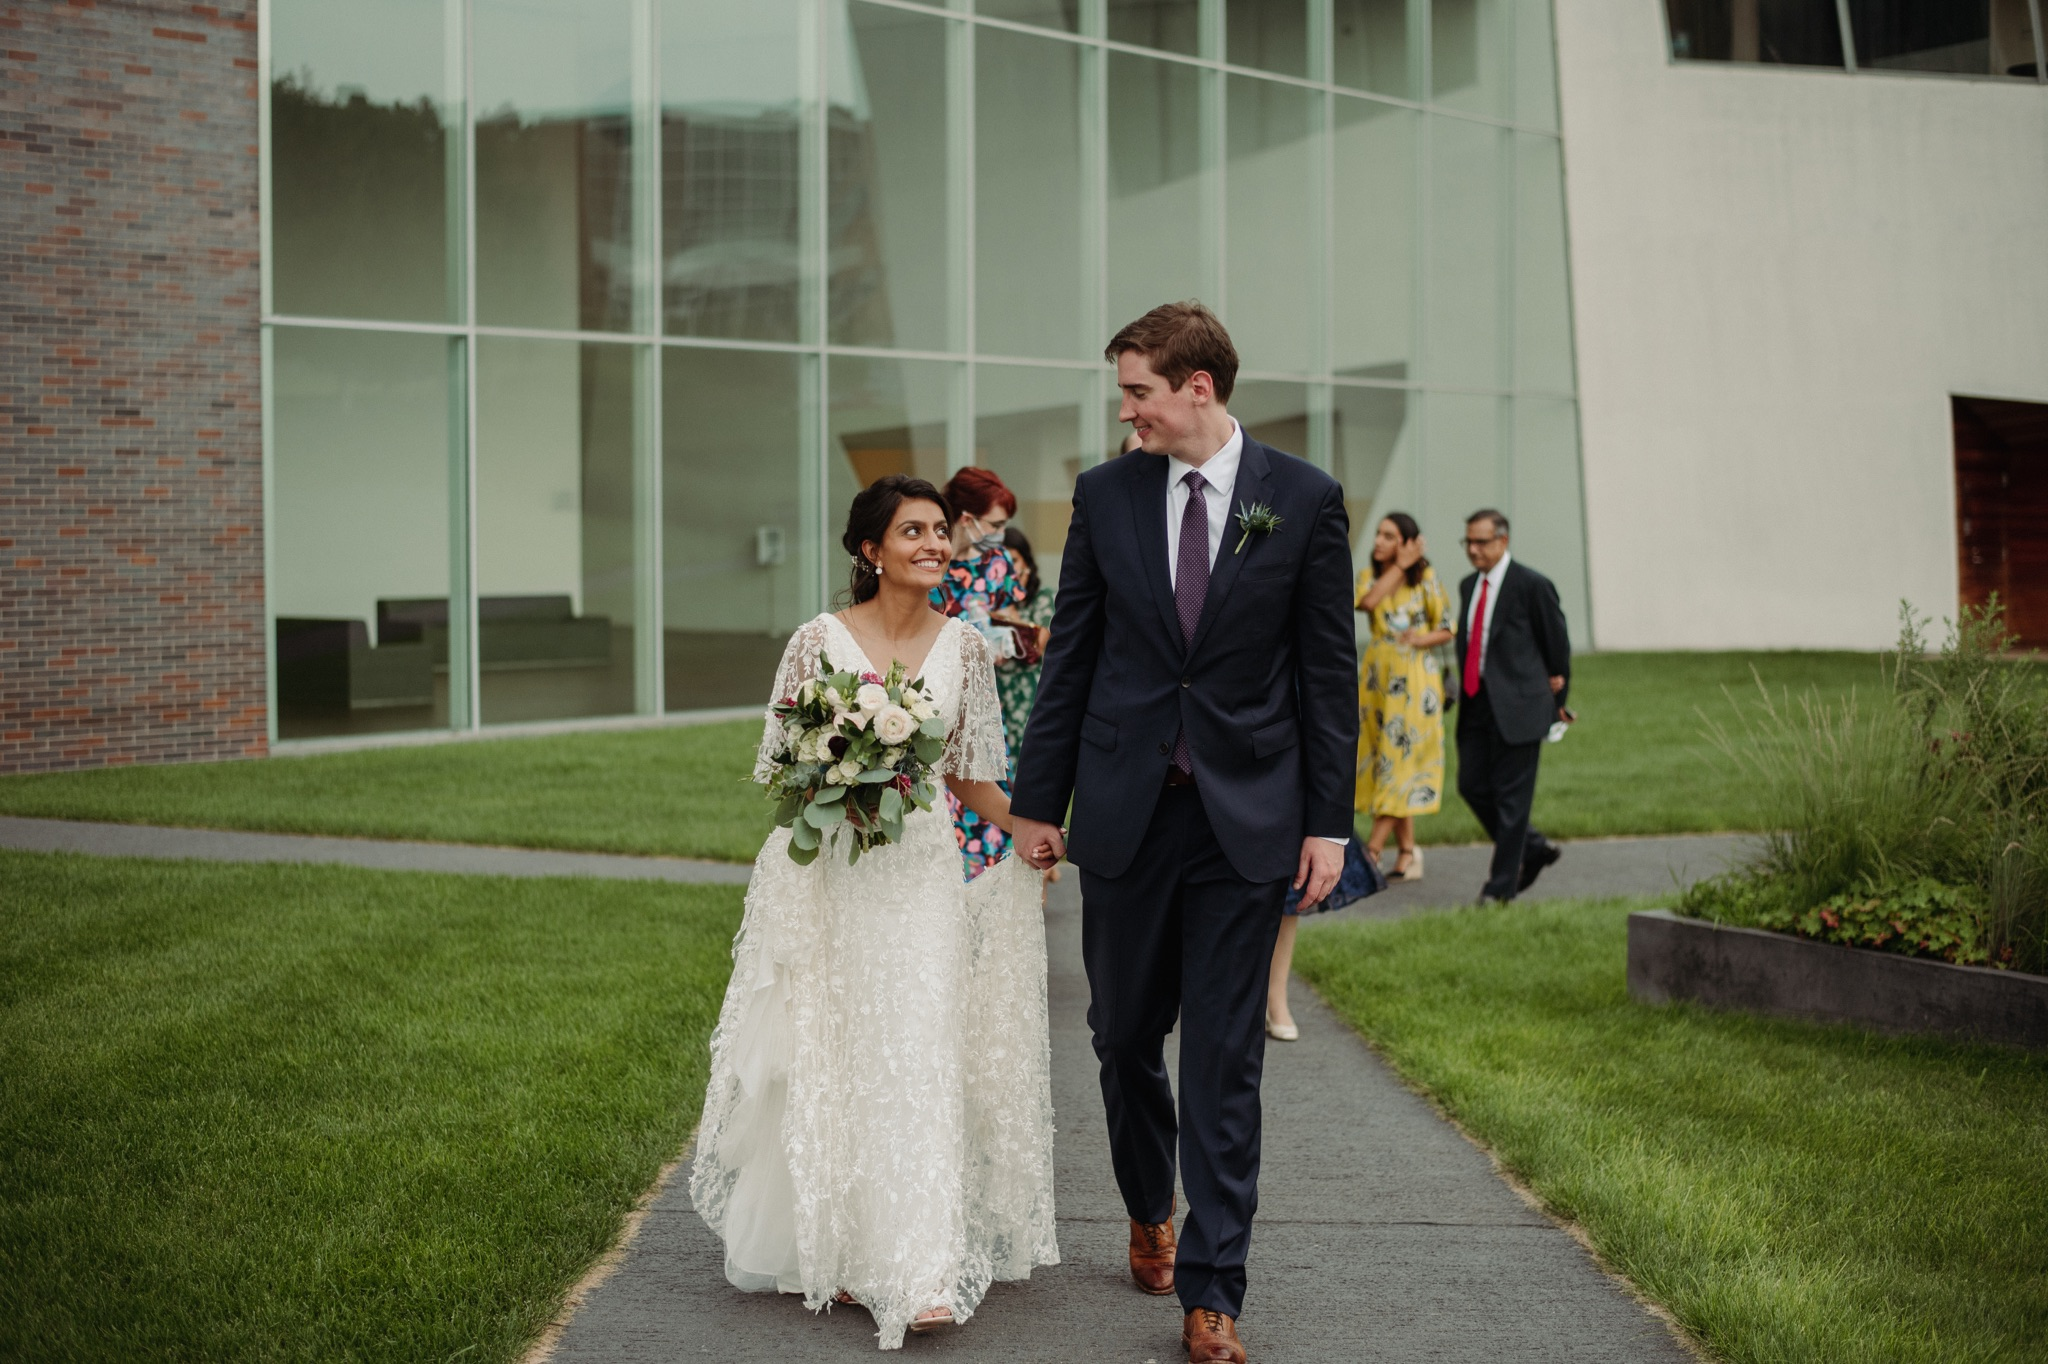 Bride and groom smiling at each other and walking next to each other while holding hands walker art center wedding